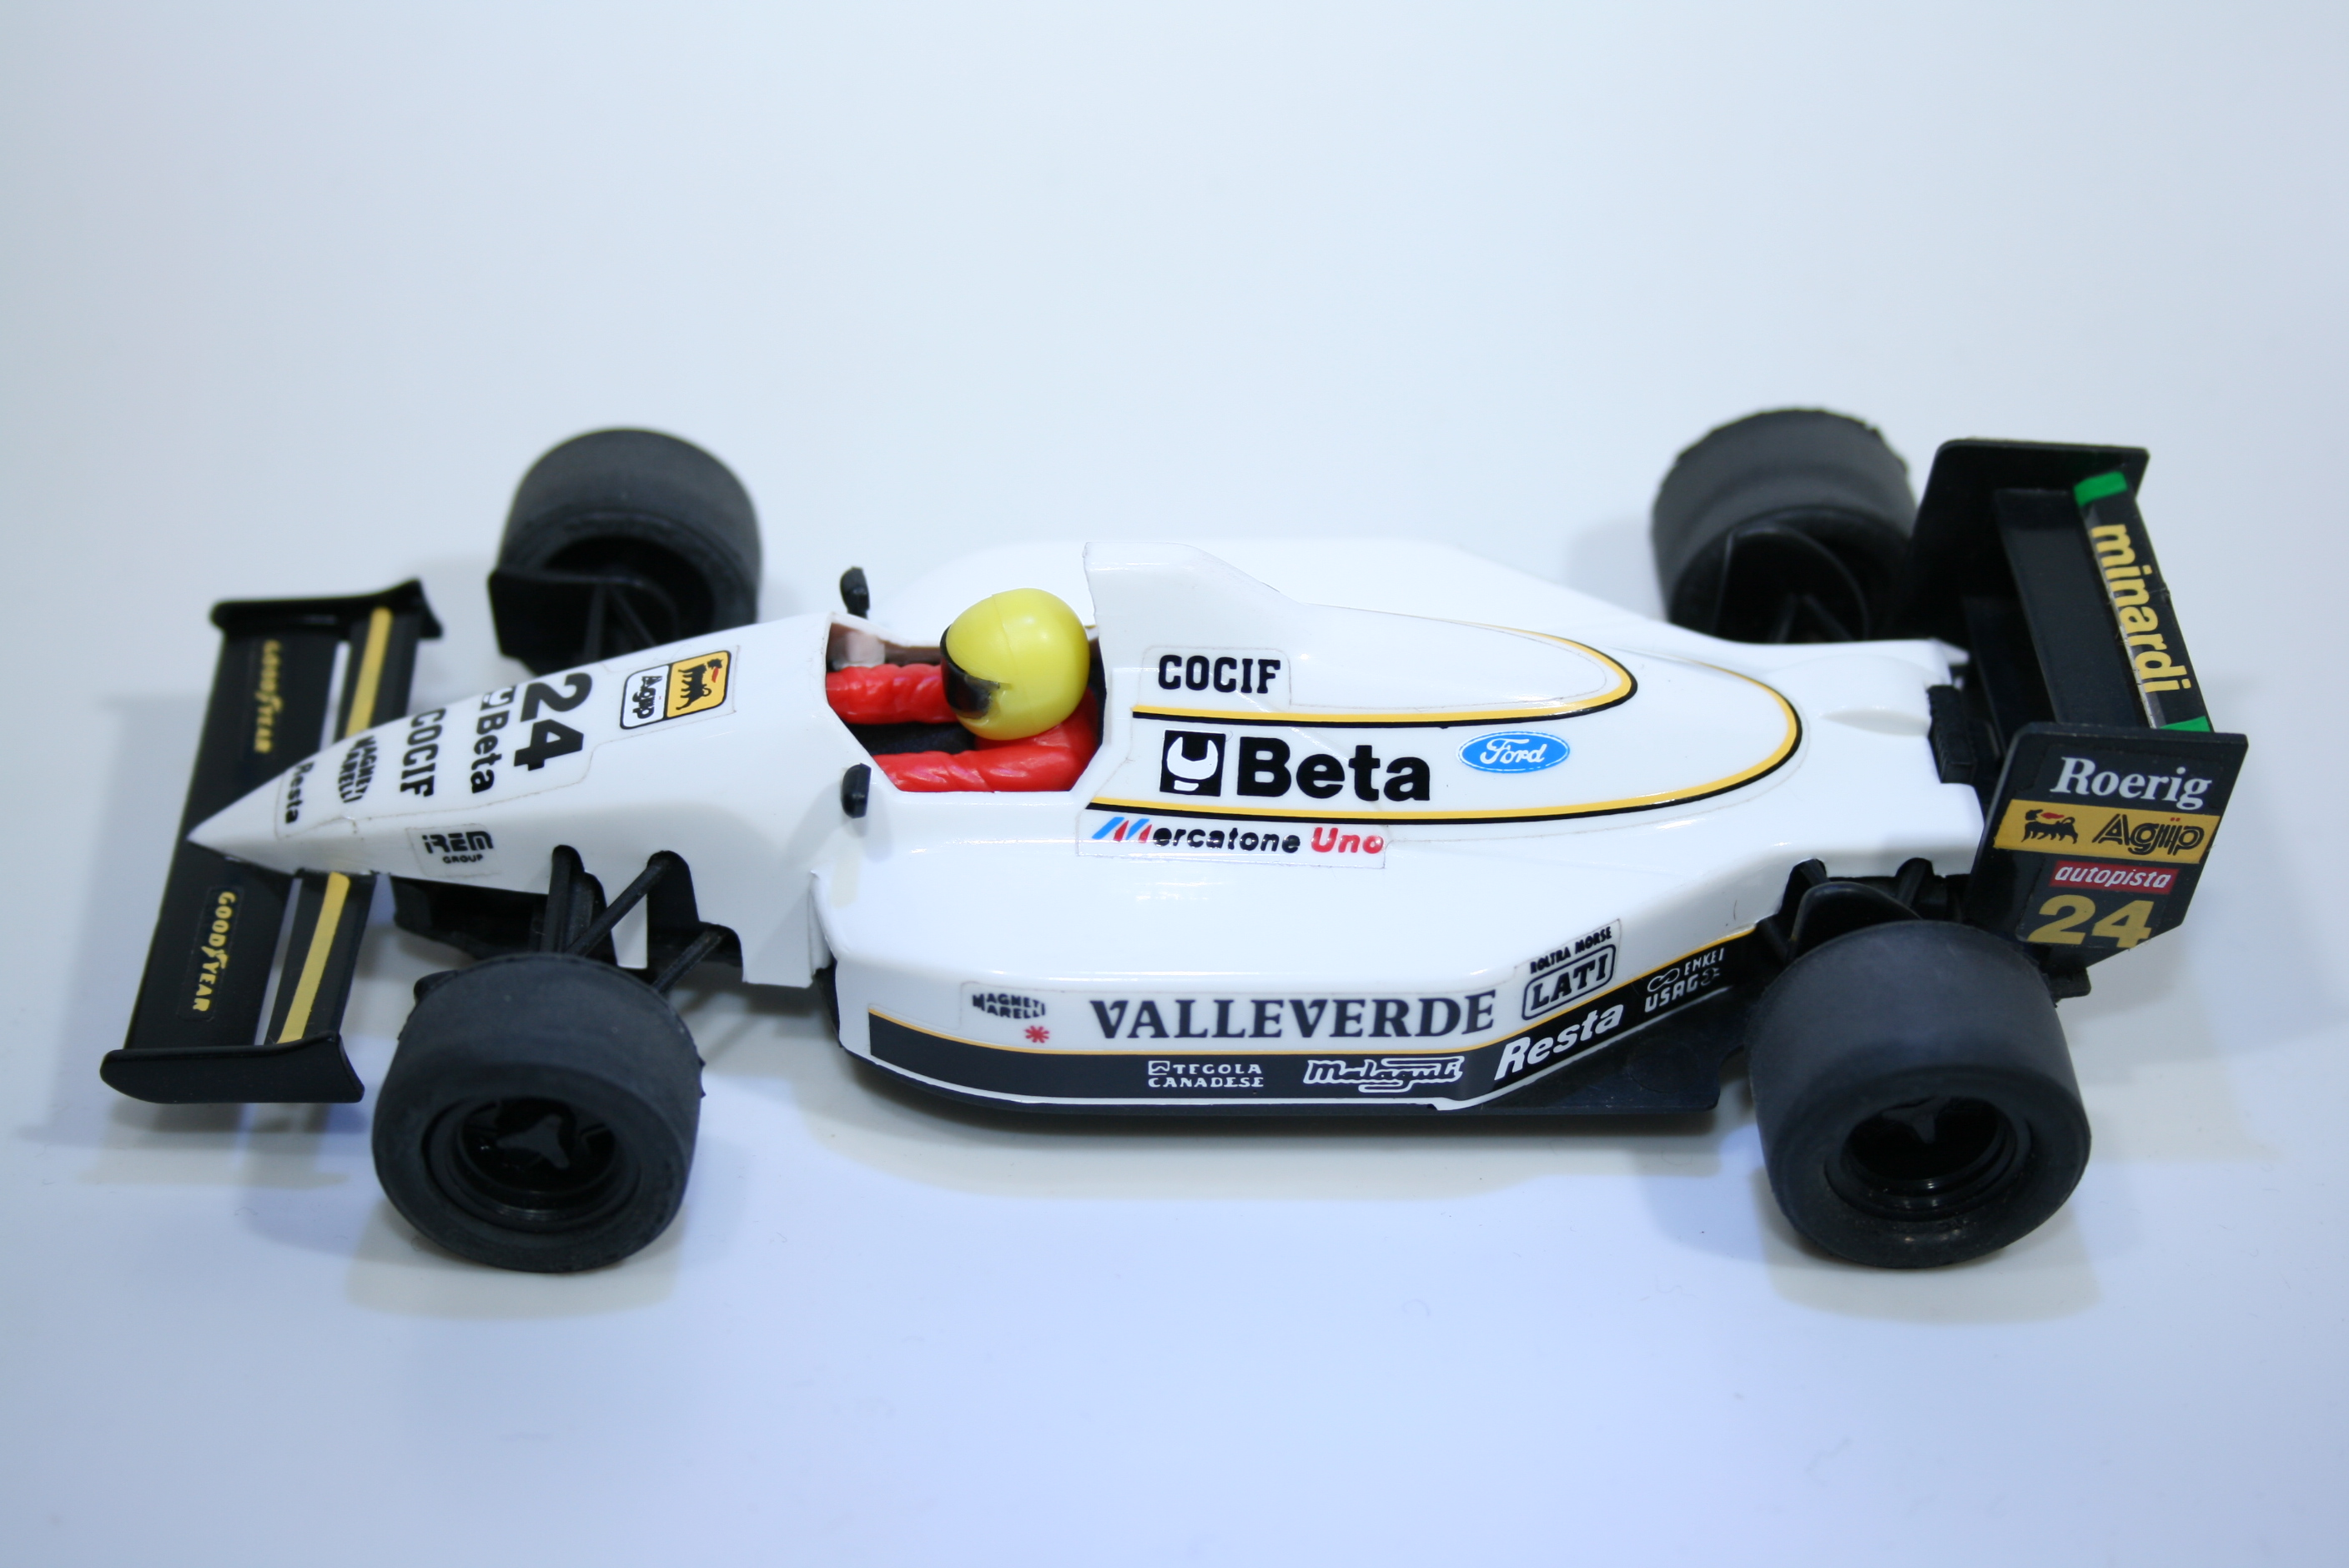 93 Minardi M193 1993 F Barbazza SCX 8374 1994 Boxed